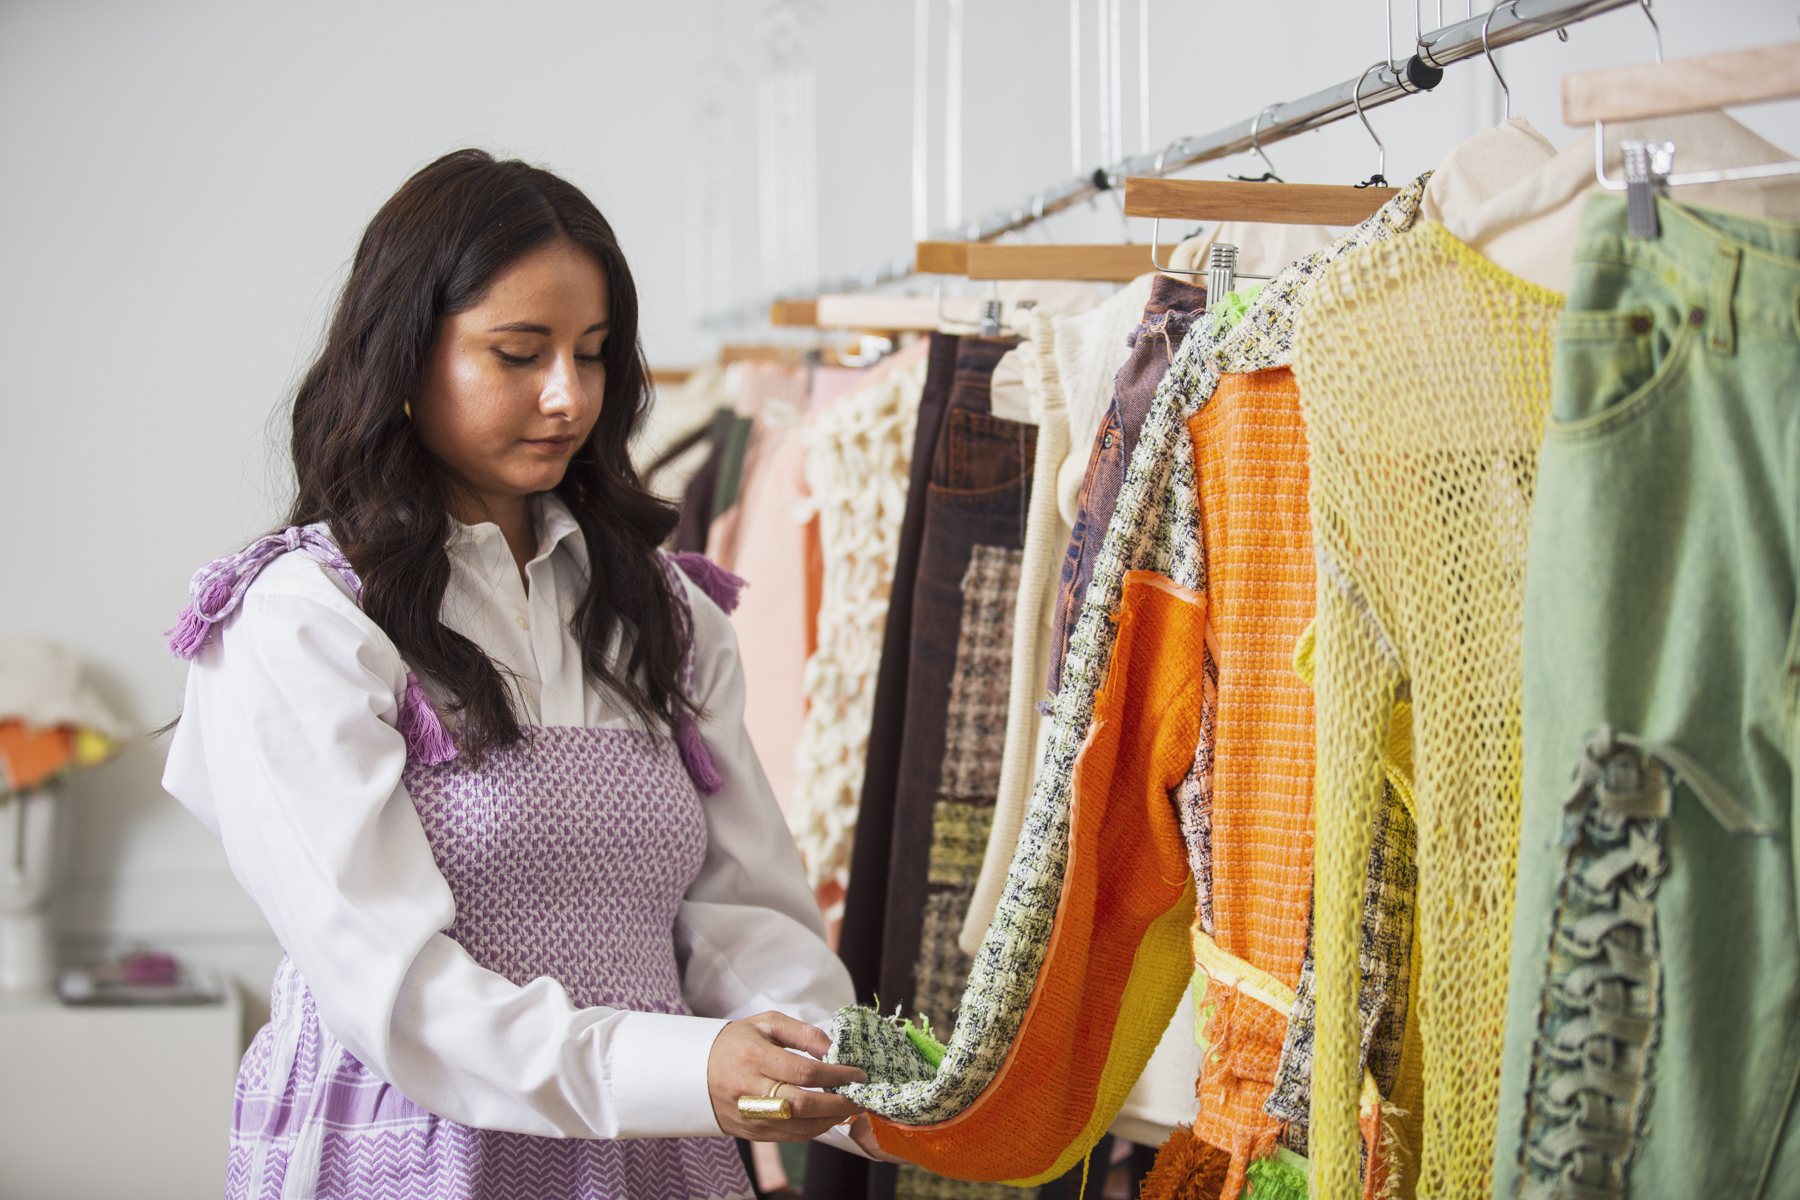 image: Nelissa Carrillo is looking down, holding the sleeve of a multi-colored jacket with a large orange patch. The jacket is on a rack of garments from Ciprianamía that take up the right side of the photo, ranging from green jeans to a yellow knit to glimpses of white sweater vests and more denim. Photo by Kristie Kahns.